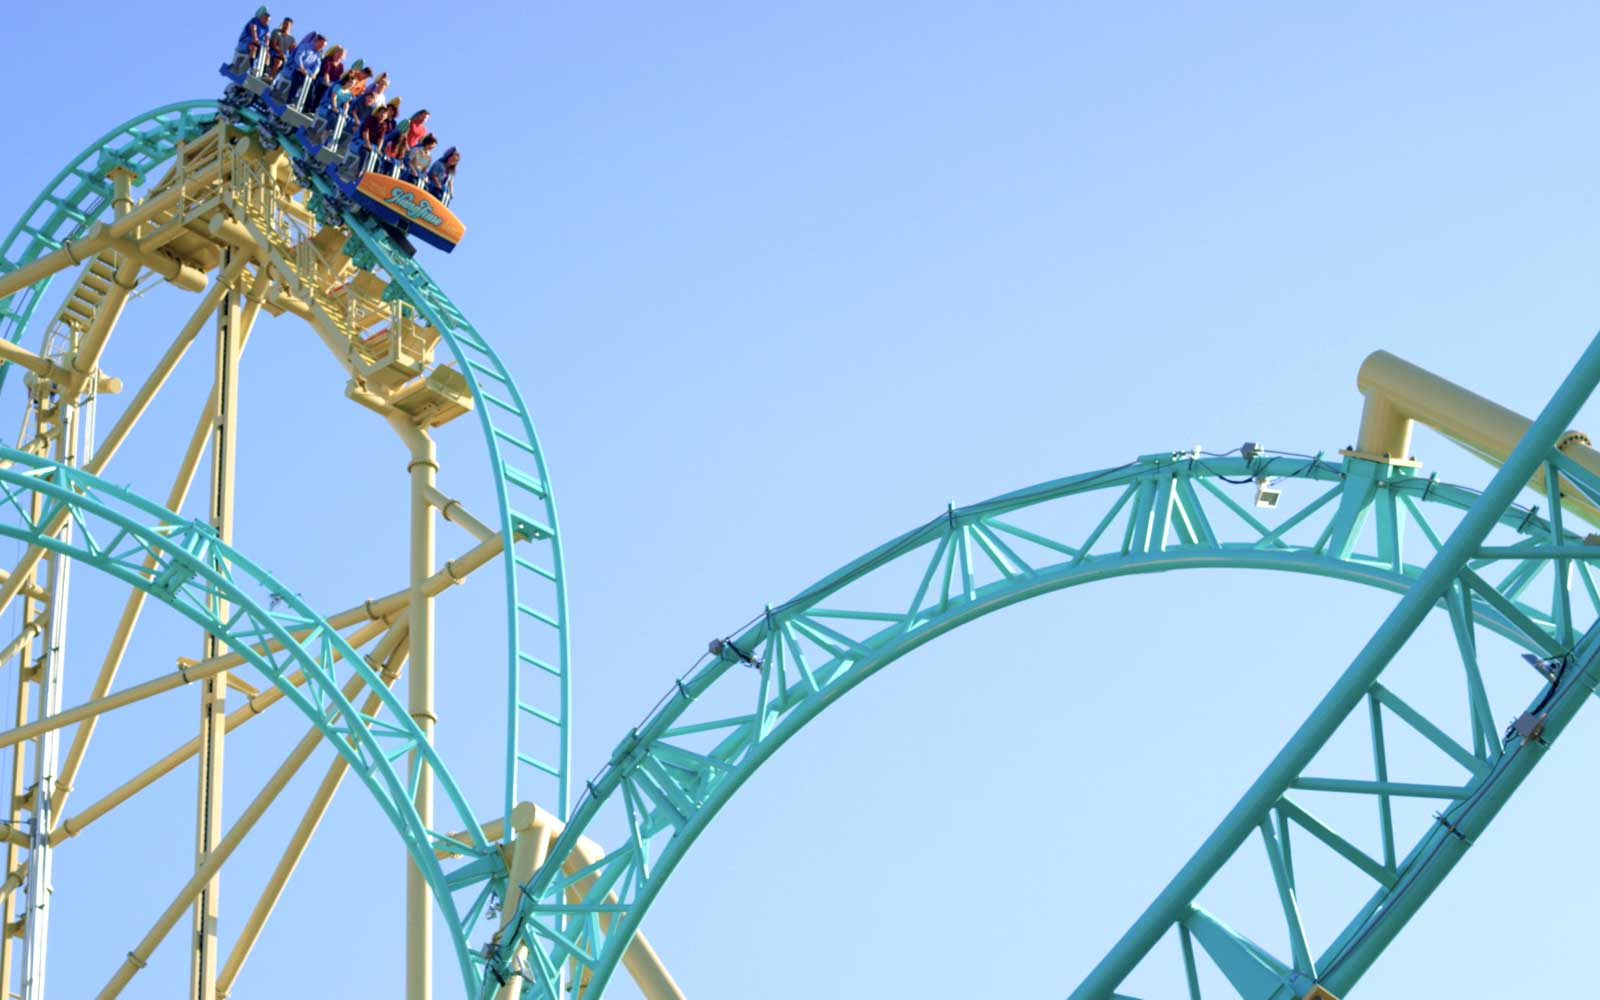 Hang Time at Knott's Berry Farm